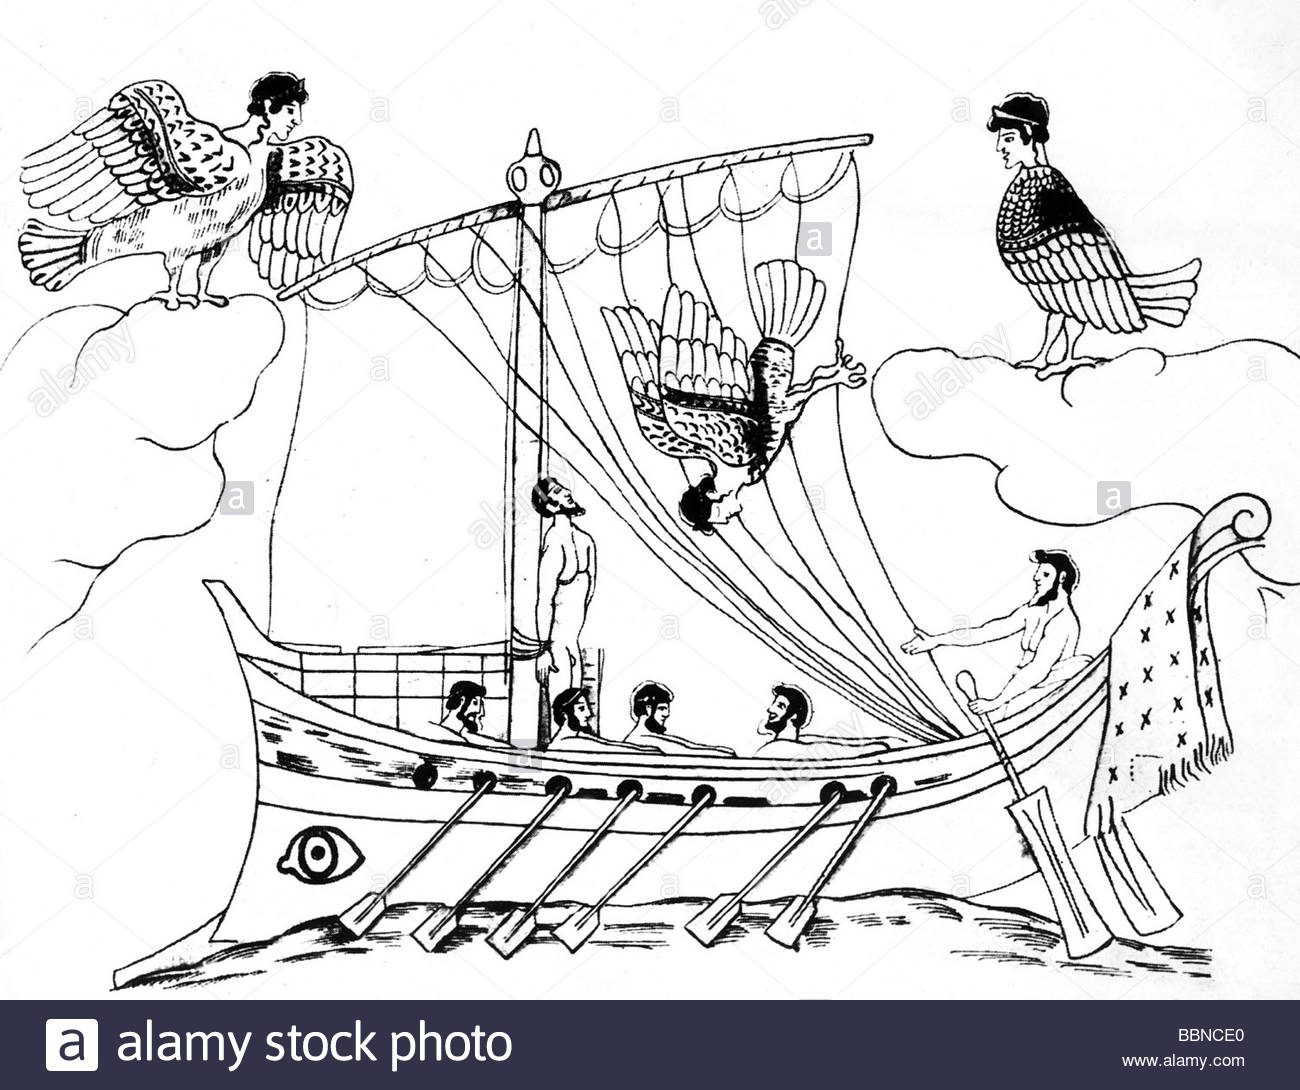 1300x1090 Odysseus (Ulysses), Greek King Of Ithaca And Hero, Passing